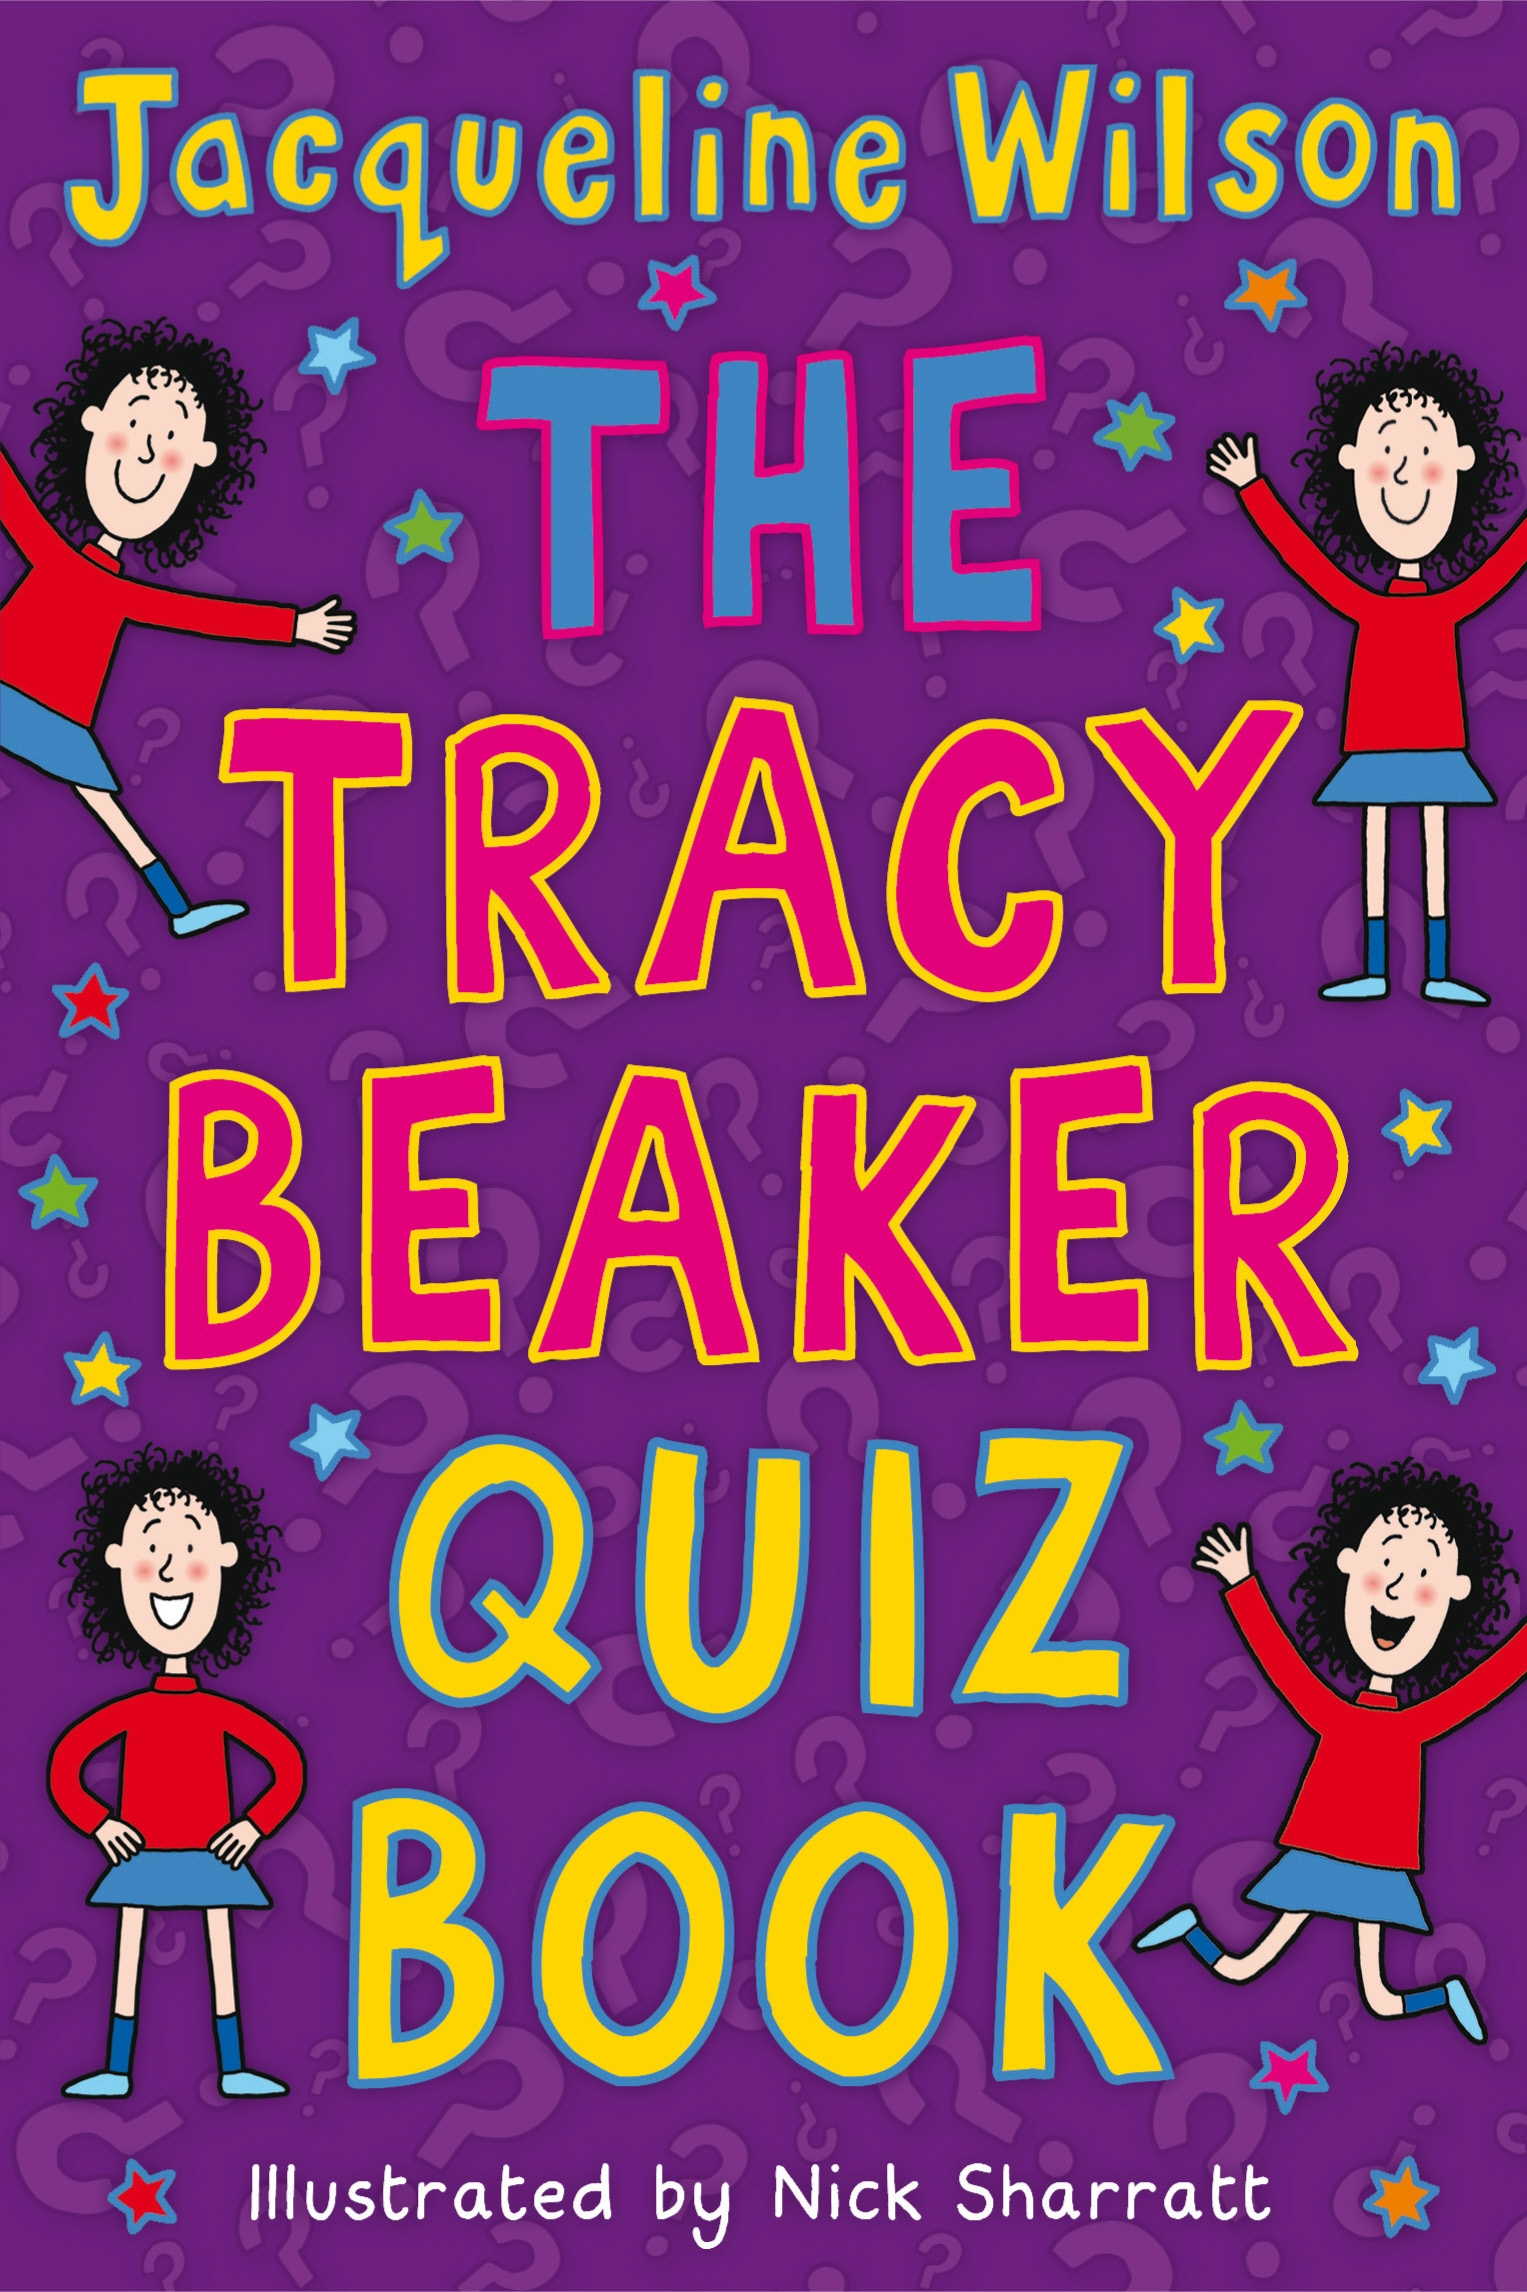 Book Cover Series Quiz : The tracy beaker quiz book by jacqueline wilson penguin